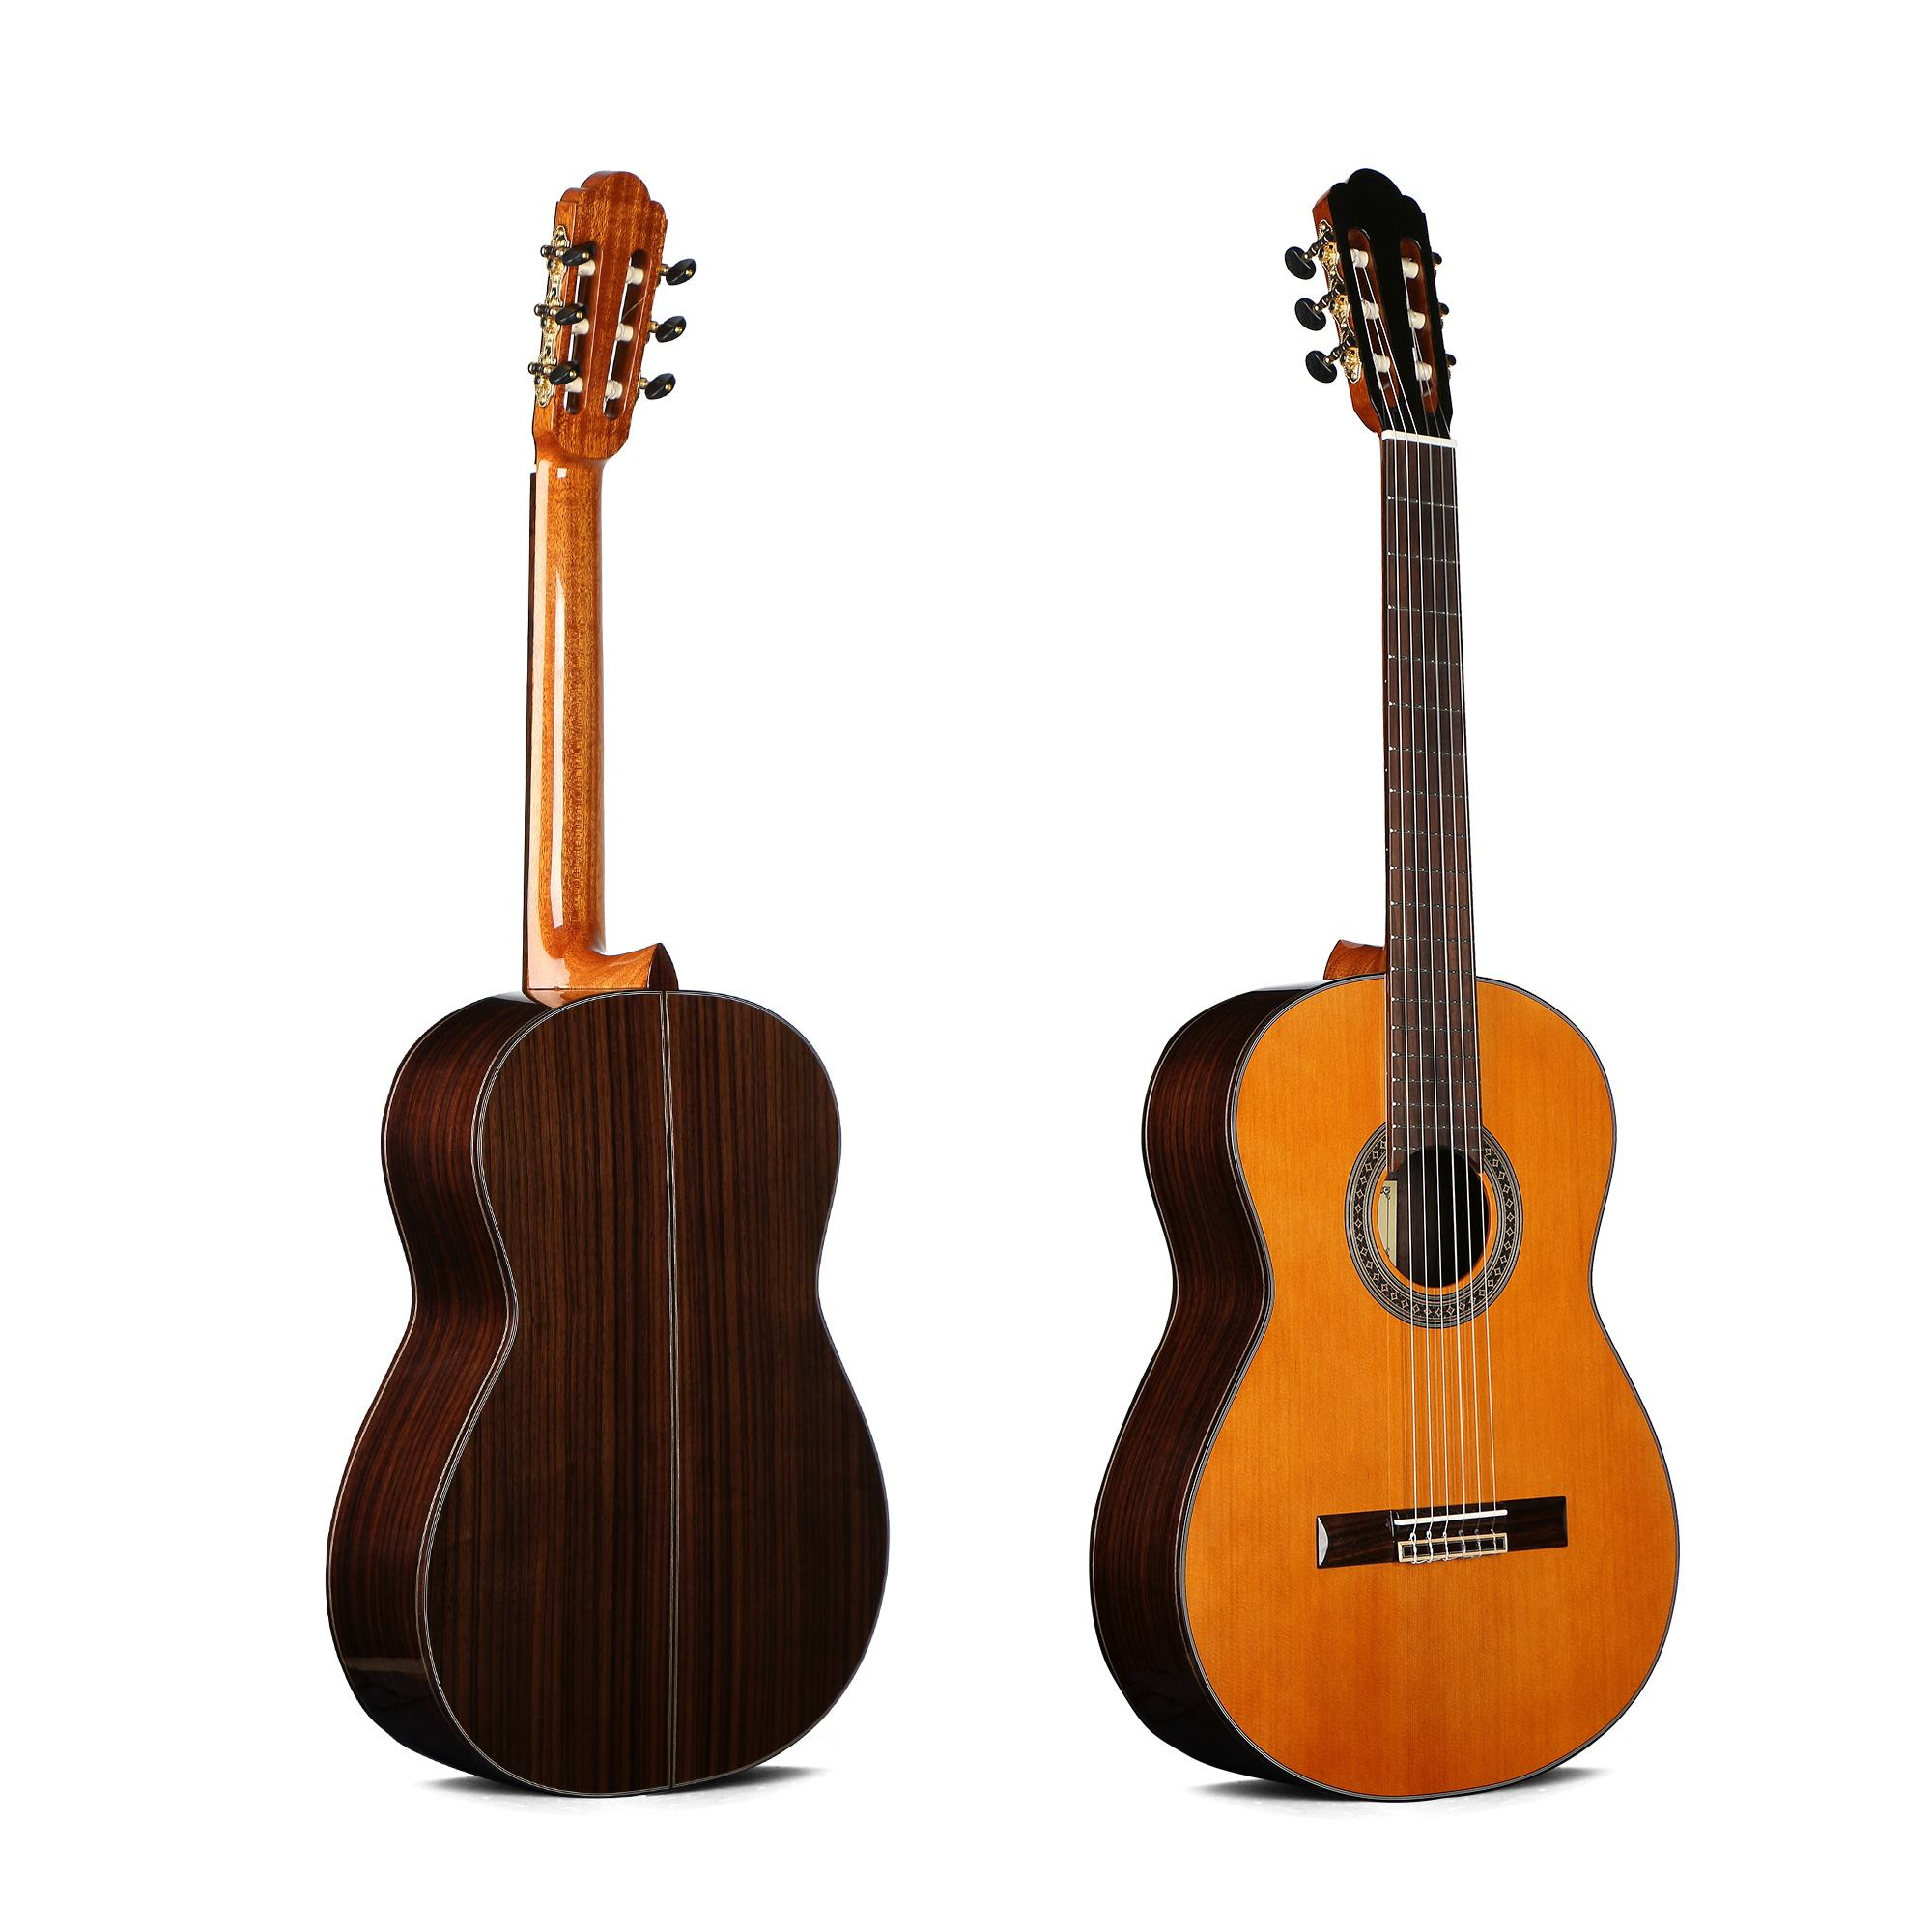 39 inch classical guitar all solid body high quality China hand made guitar wholesale CG-950S